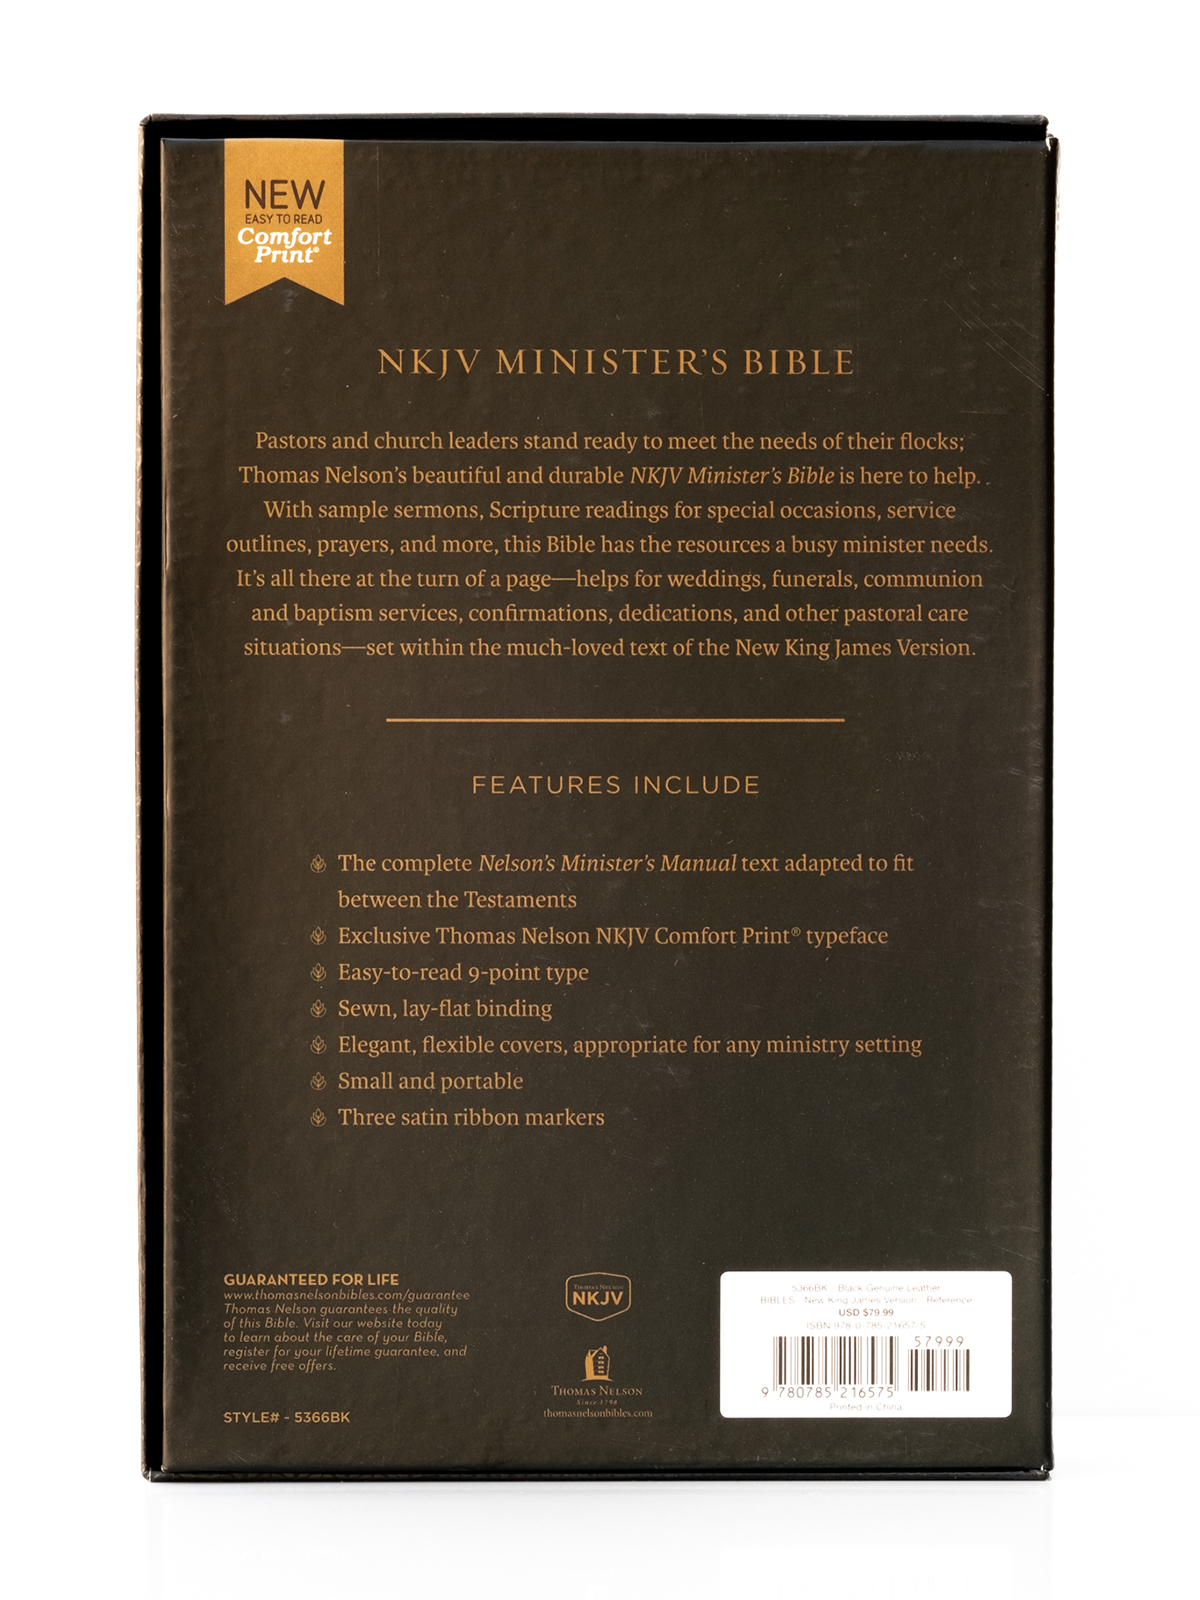 NKJV Ministers Bible Back Cover